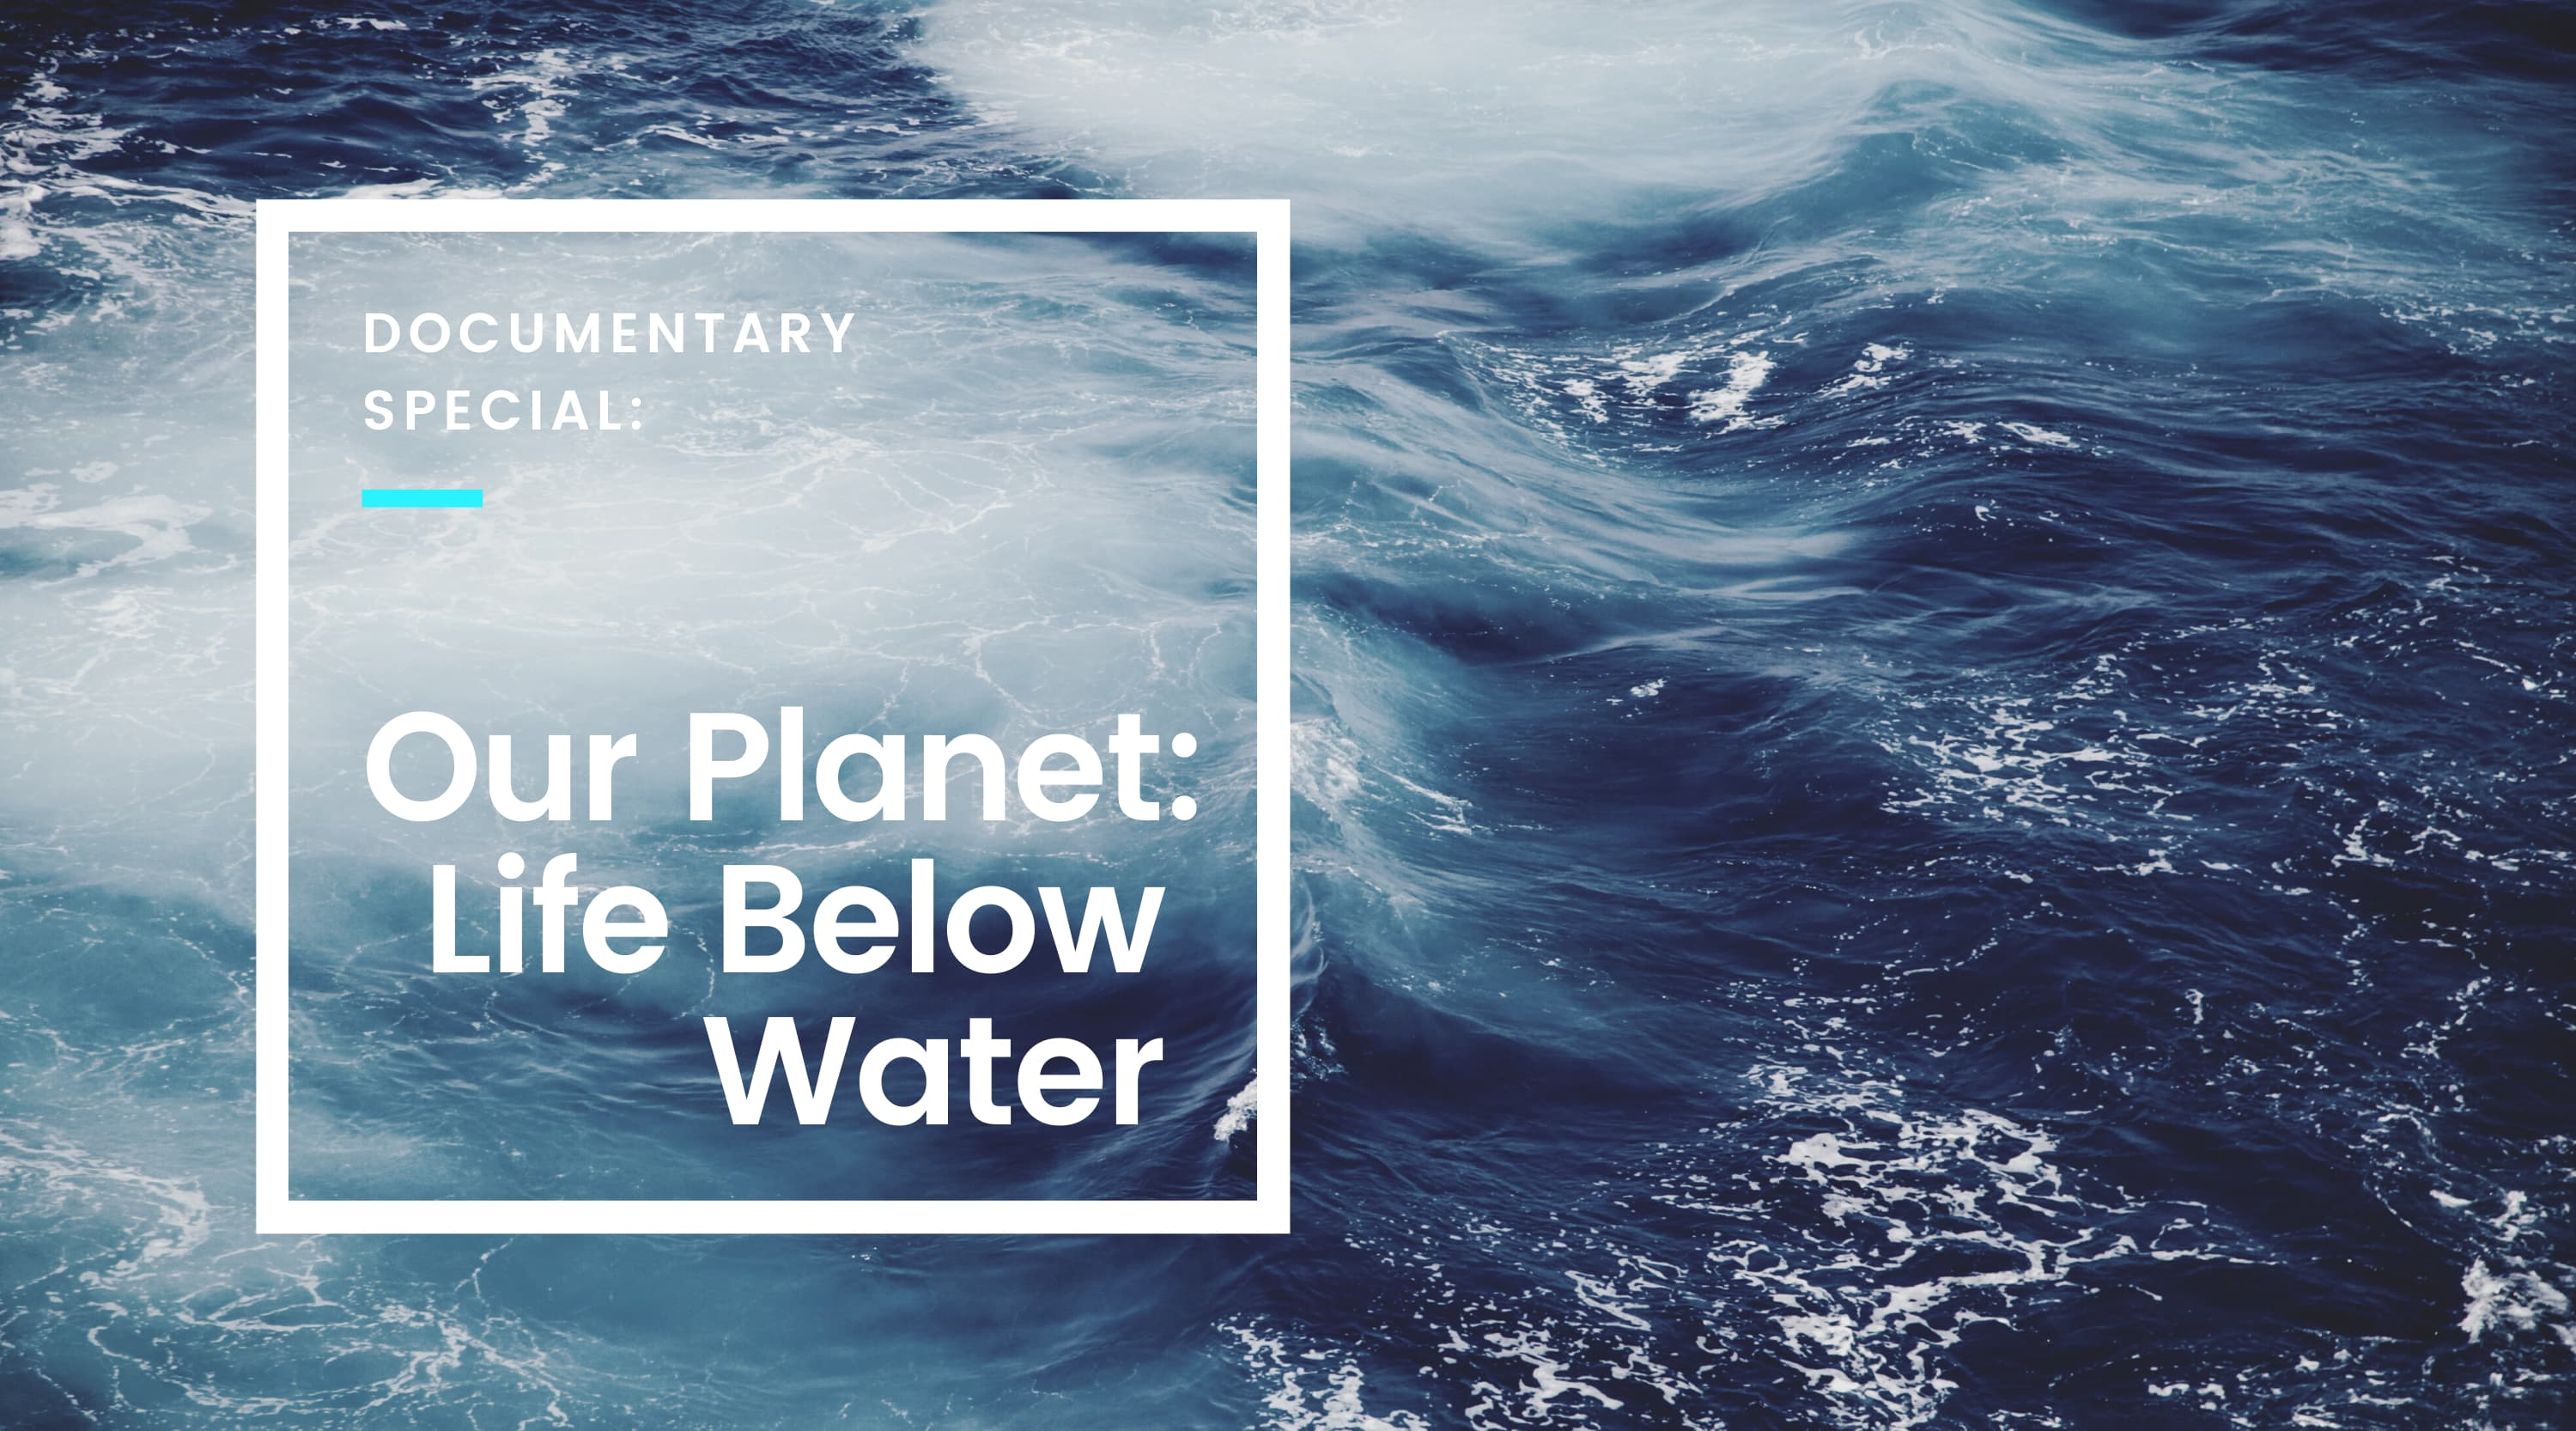 Documentary Special: Our Planet - Life Below Water